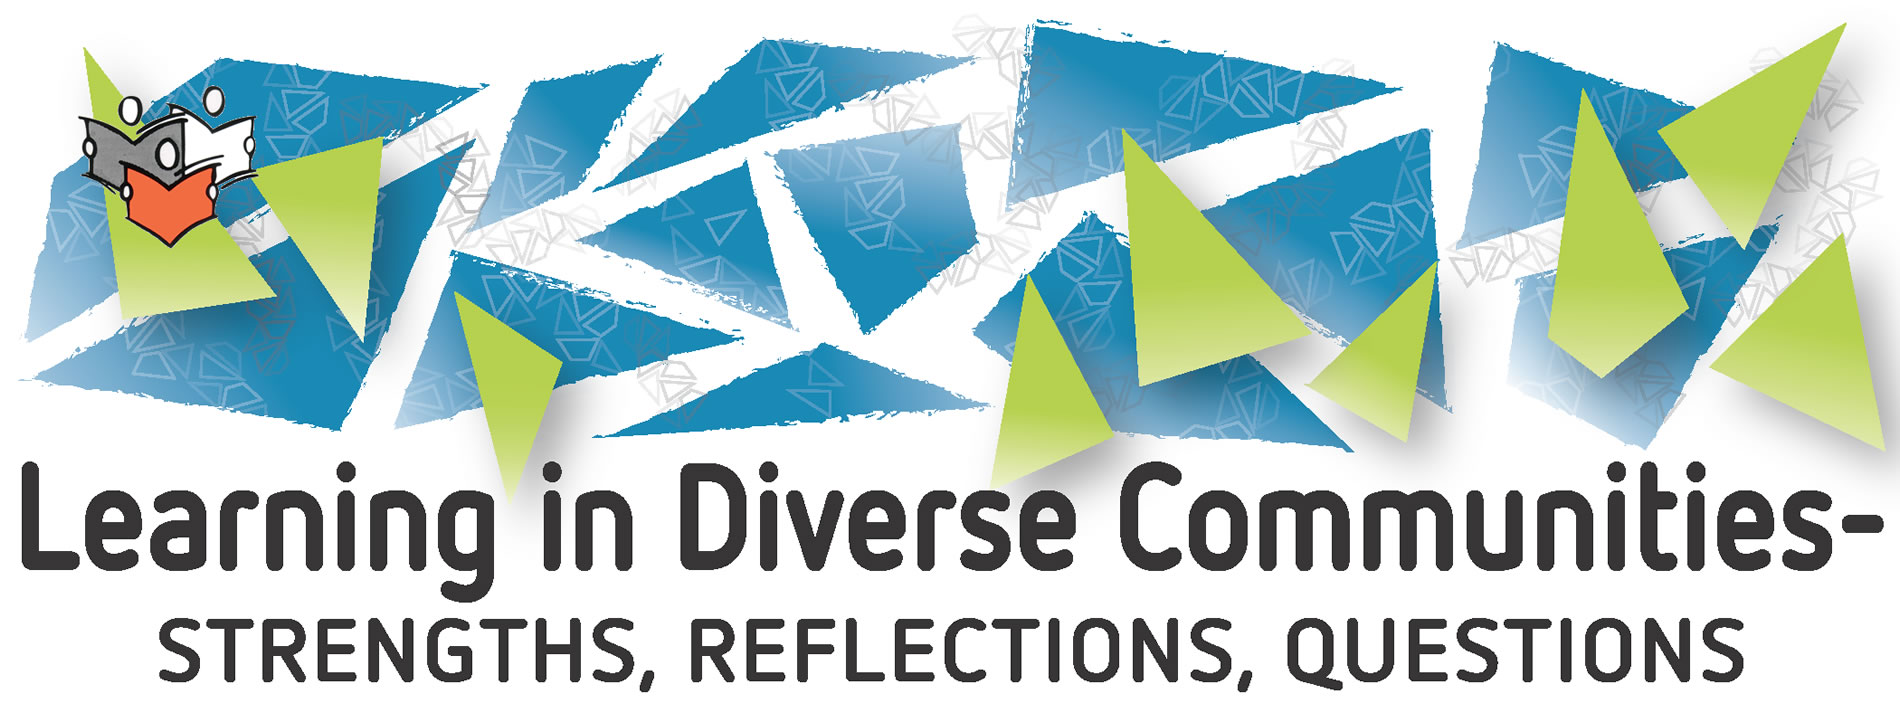 2018 ACAL conference